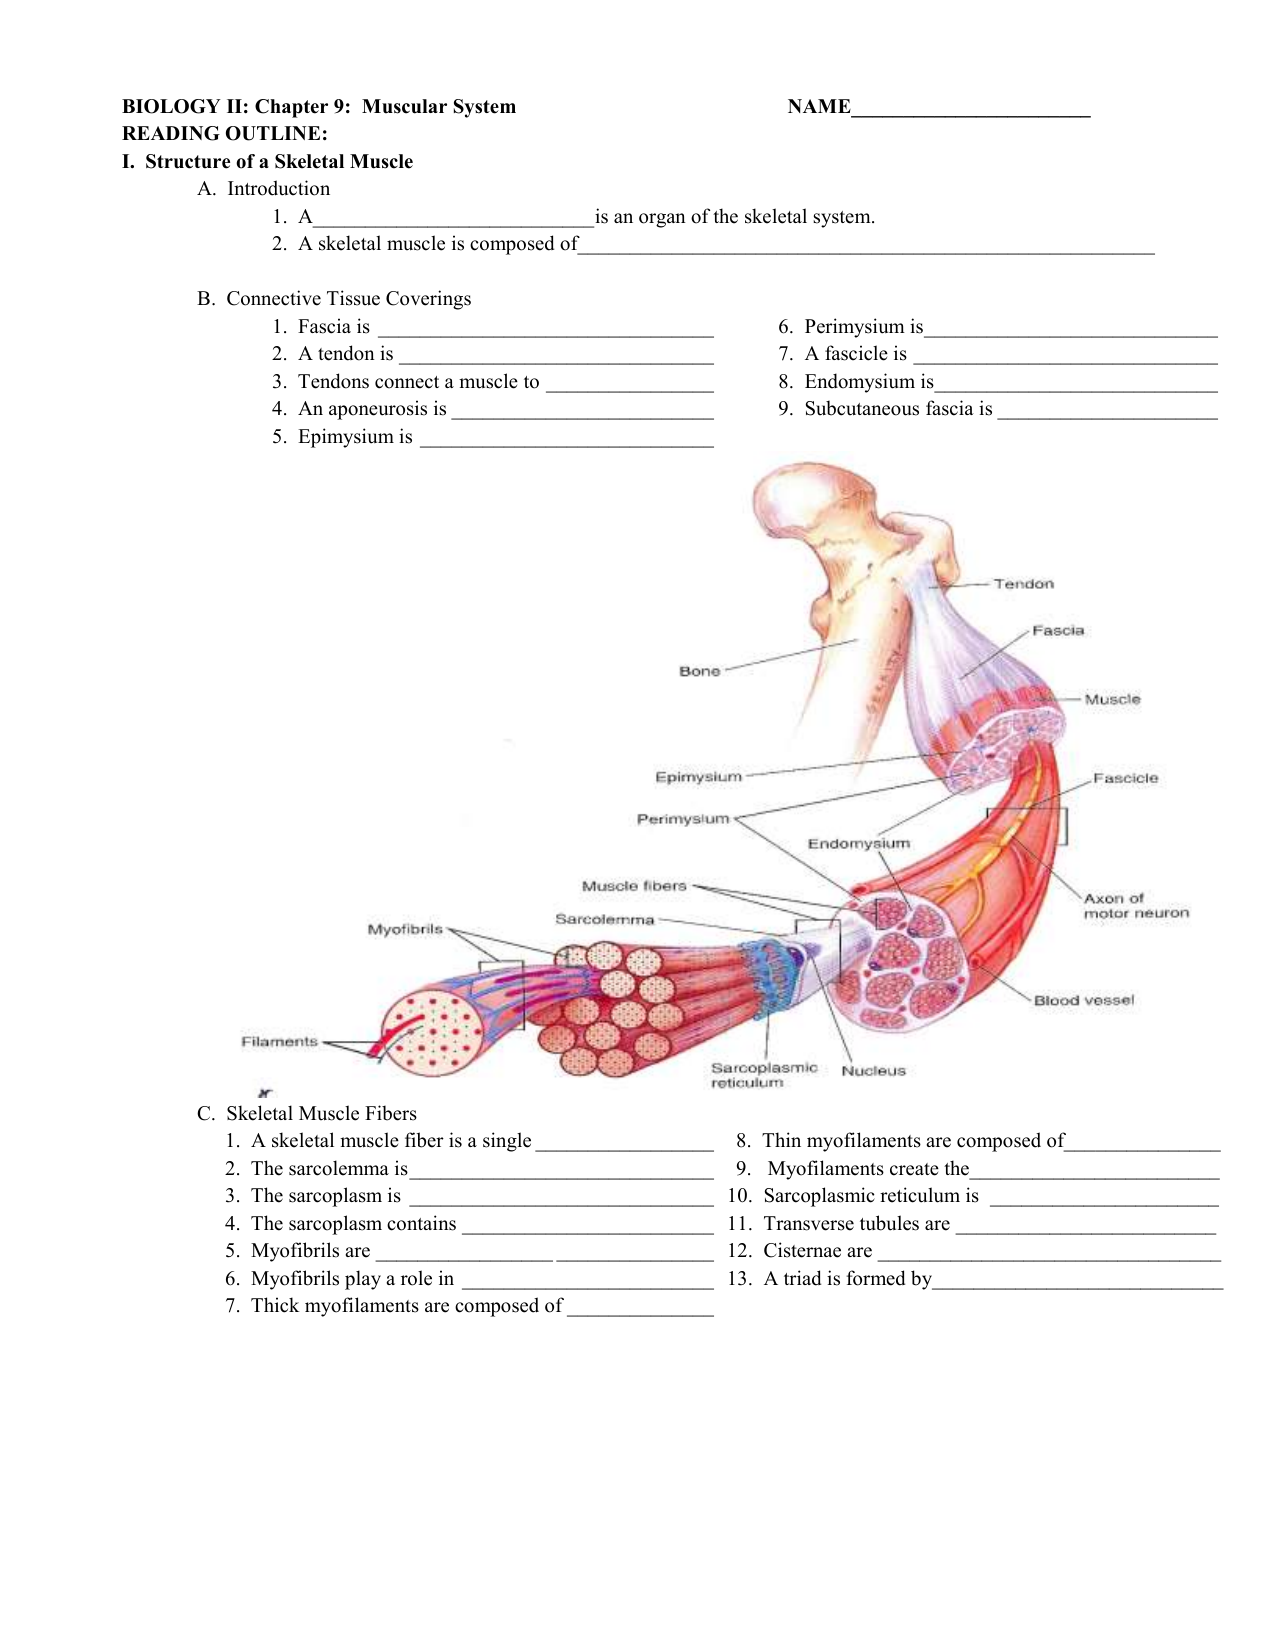 Biology Ii Chapter 9 Muscular System Name